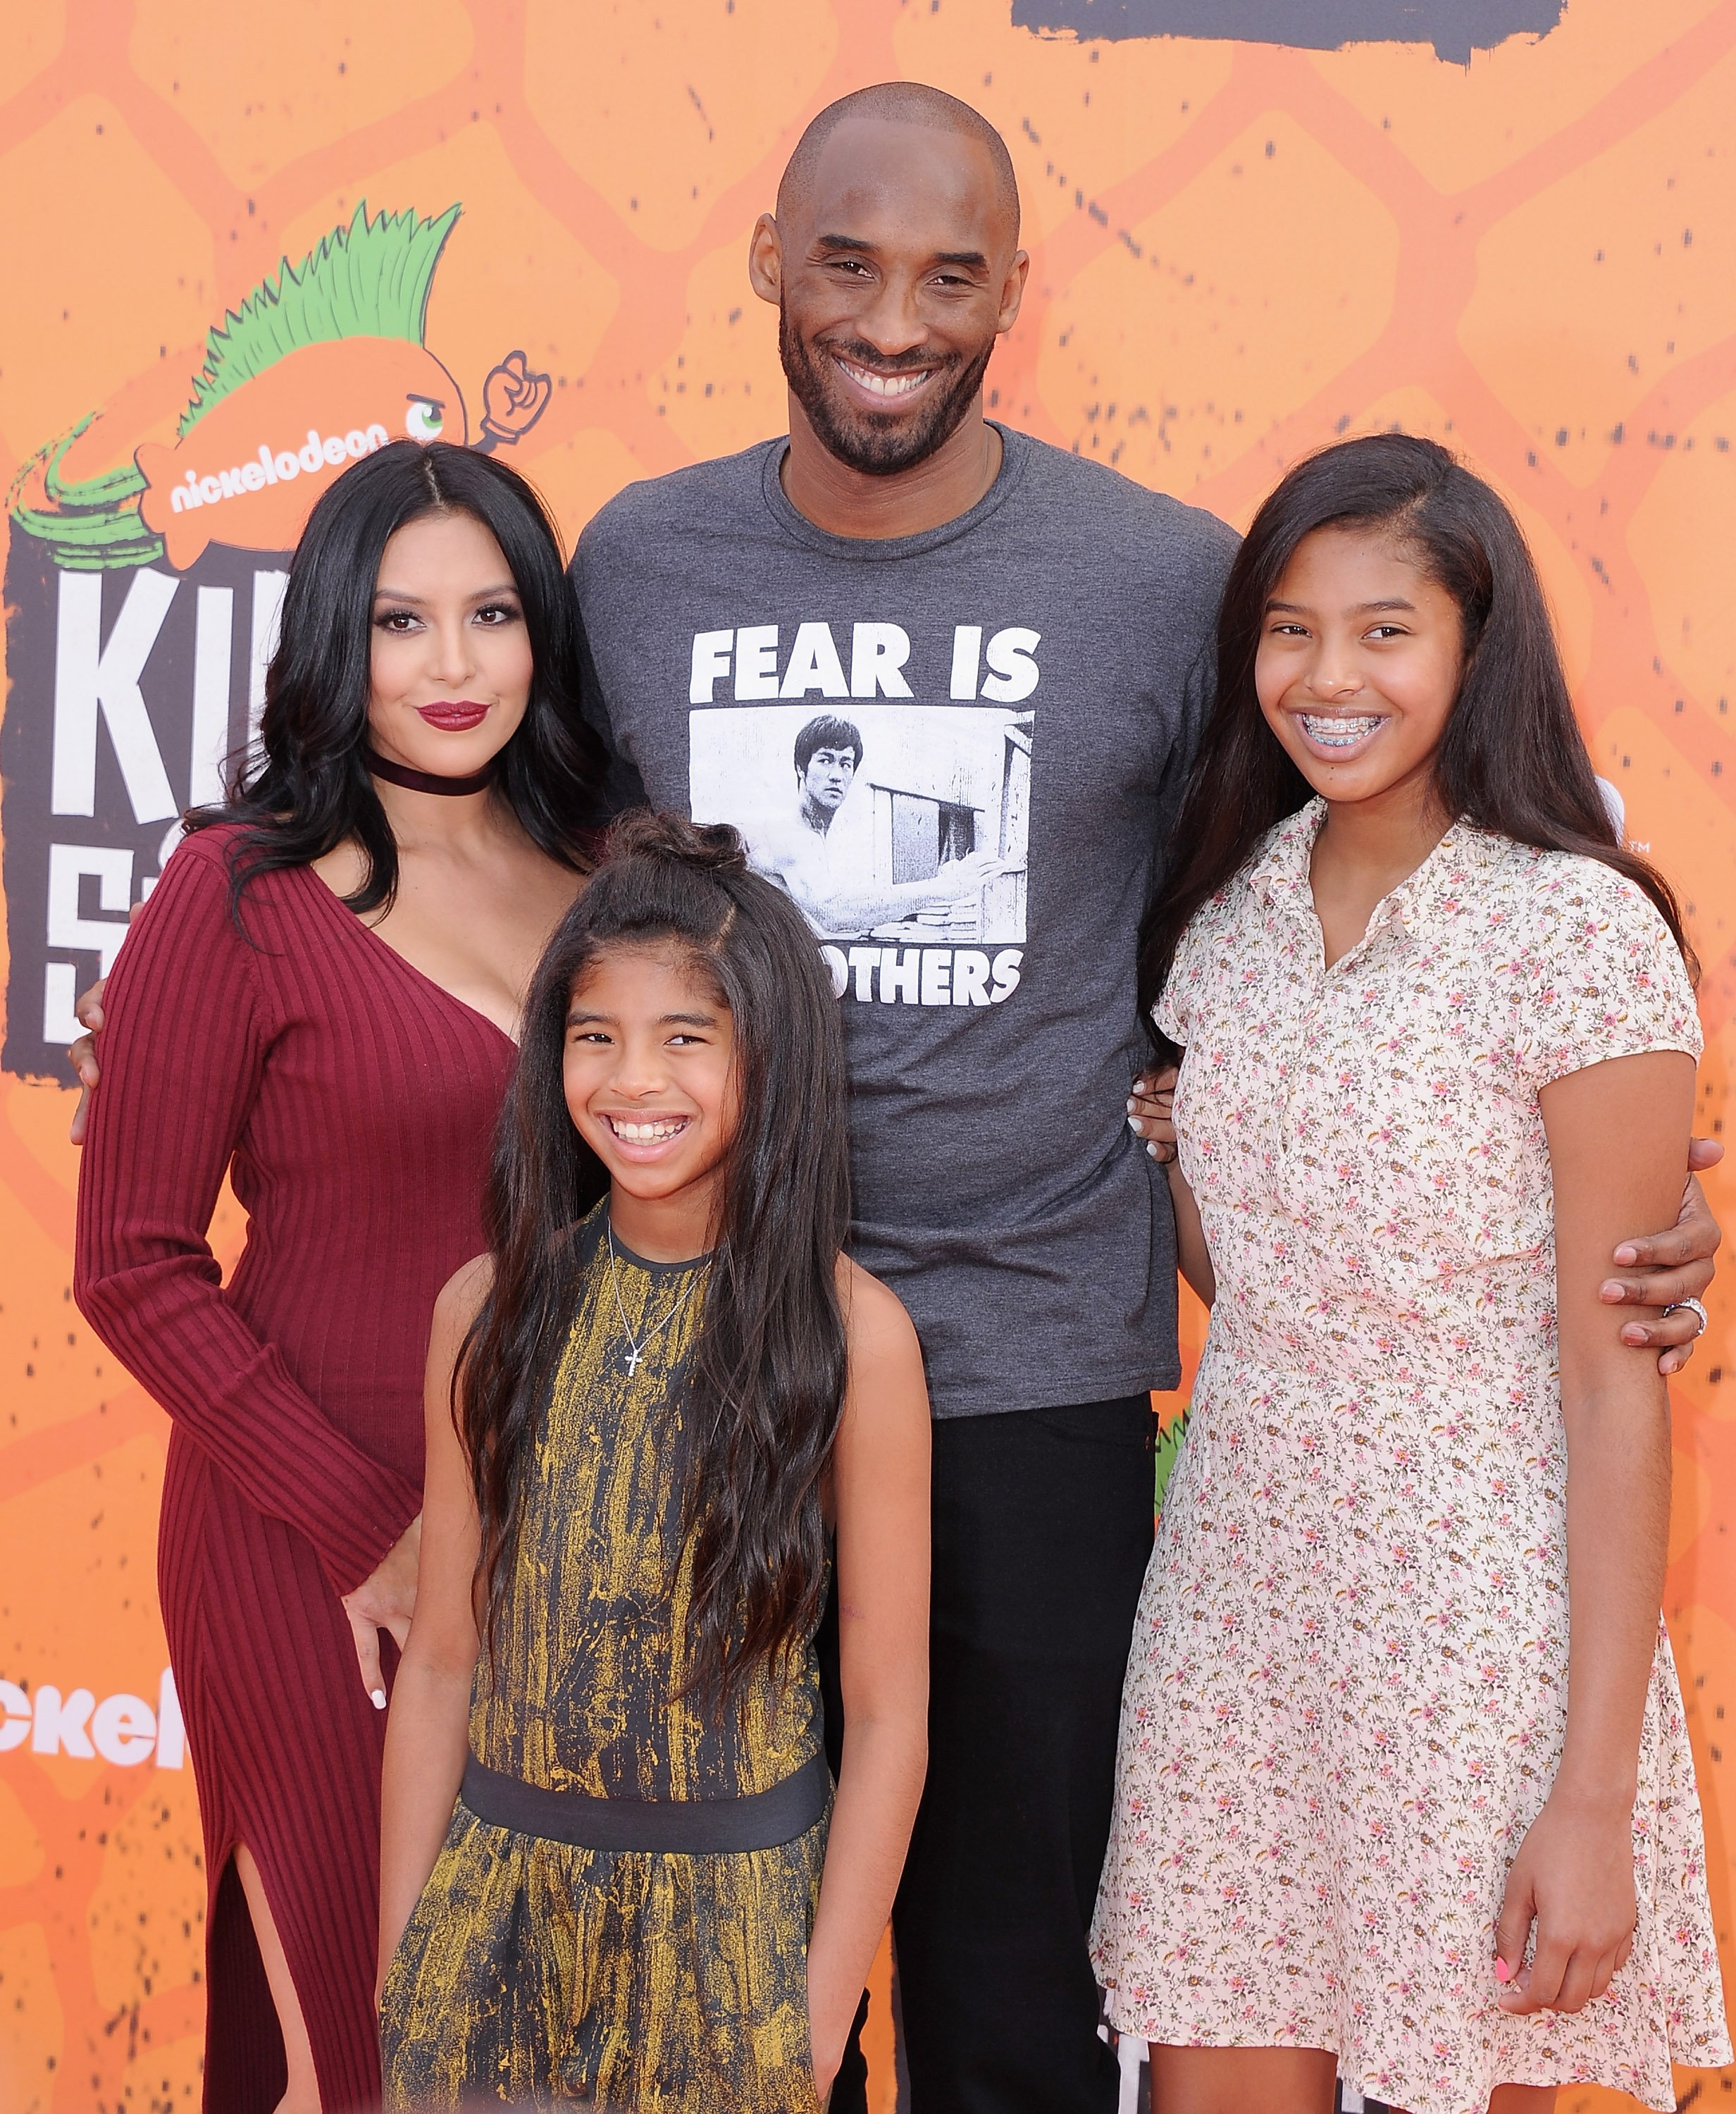 Kobe Bryant and his wife, Vanessa, along with their daughters, Gianna and Natalia, at Nickelodeon Kids' Choice Sports Awards on July 14, 2016. | Photo: Getty Images